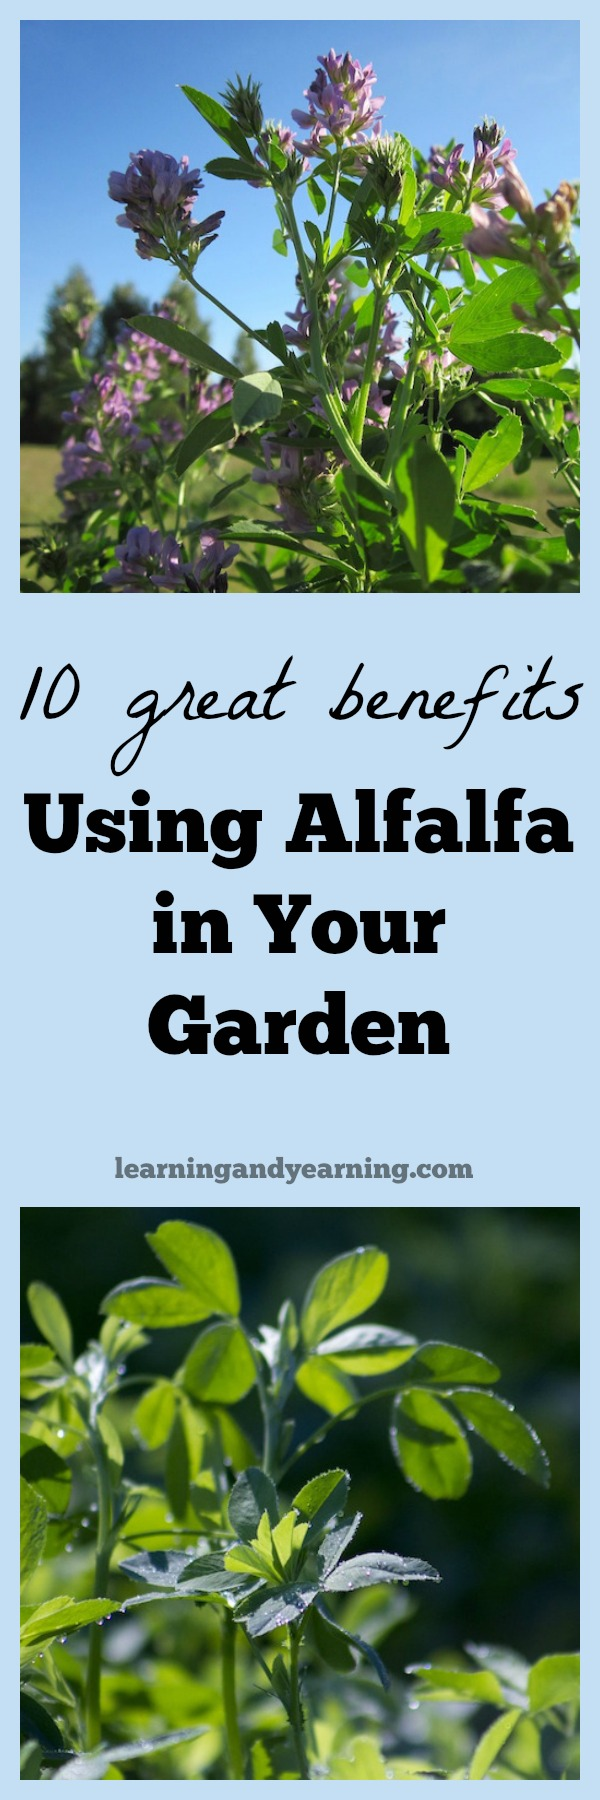 Take Your Gardening To A New Level With Alfalfa Here Are 10 Great Benefits Of